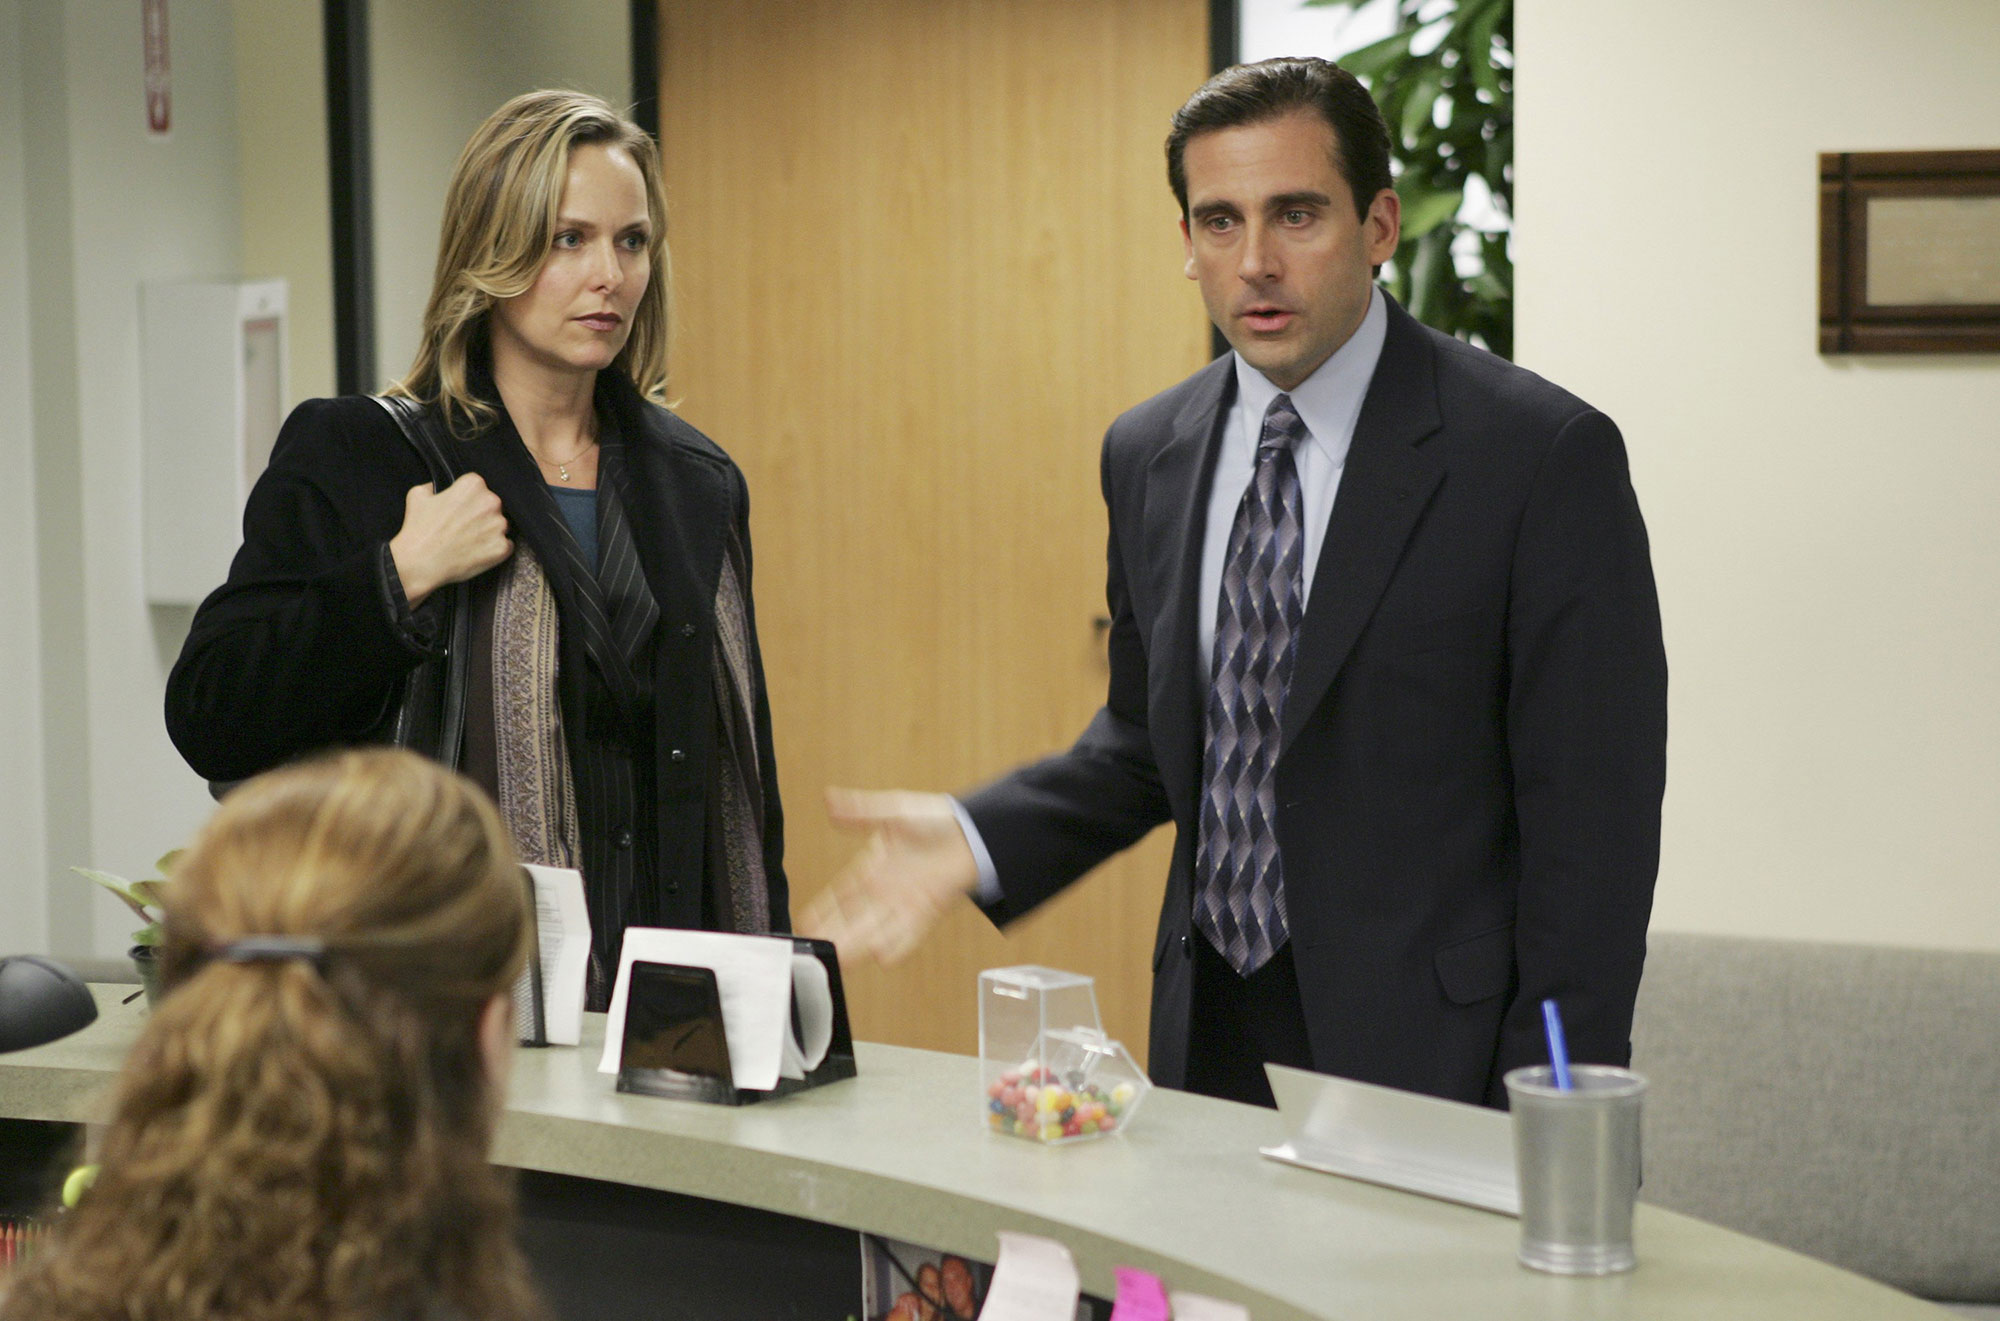 The Office Jenna Fischer as Pam Beesly, Melora Hardin as Jan Levinson and Steve Carell as Michael Scott